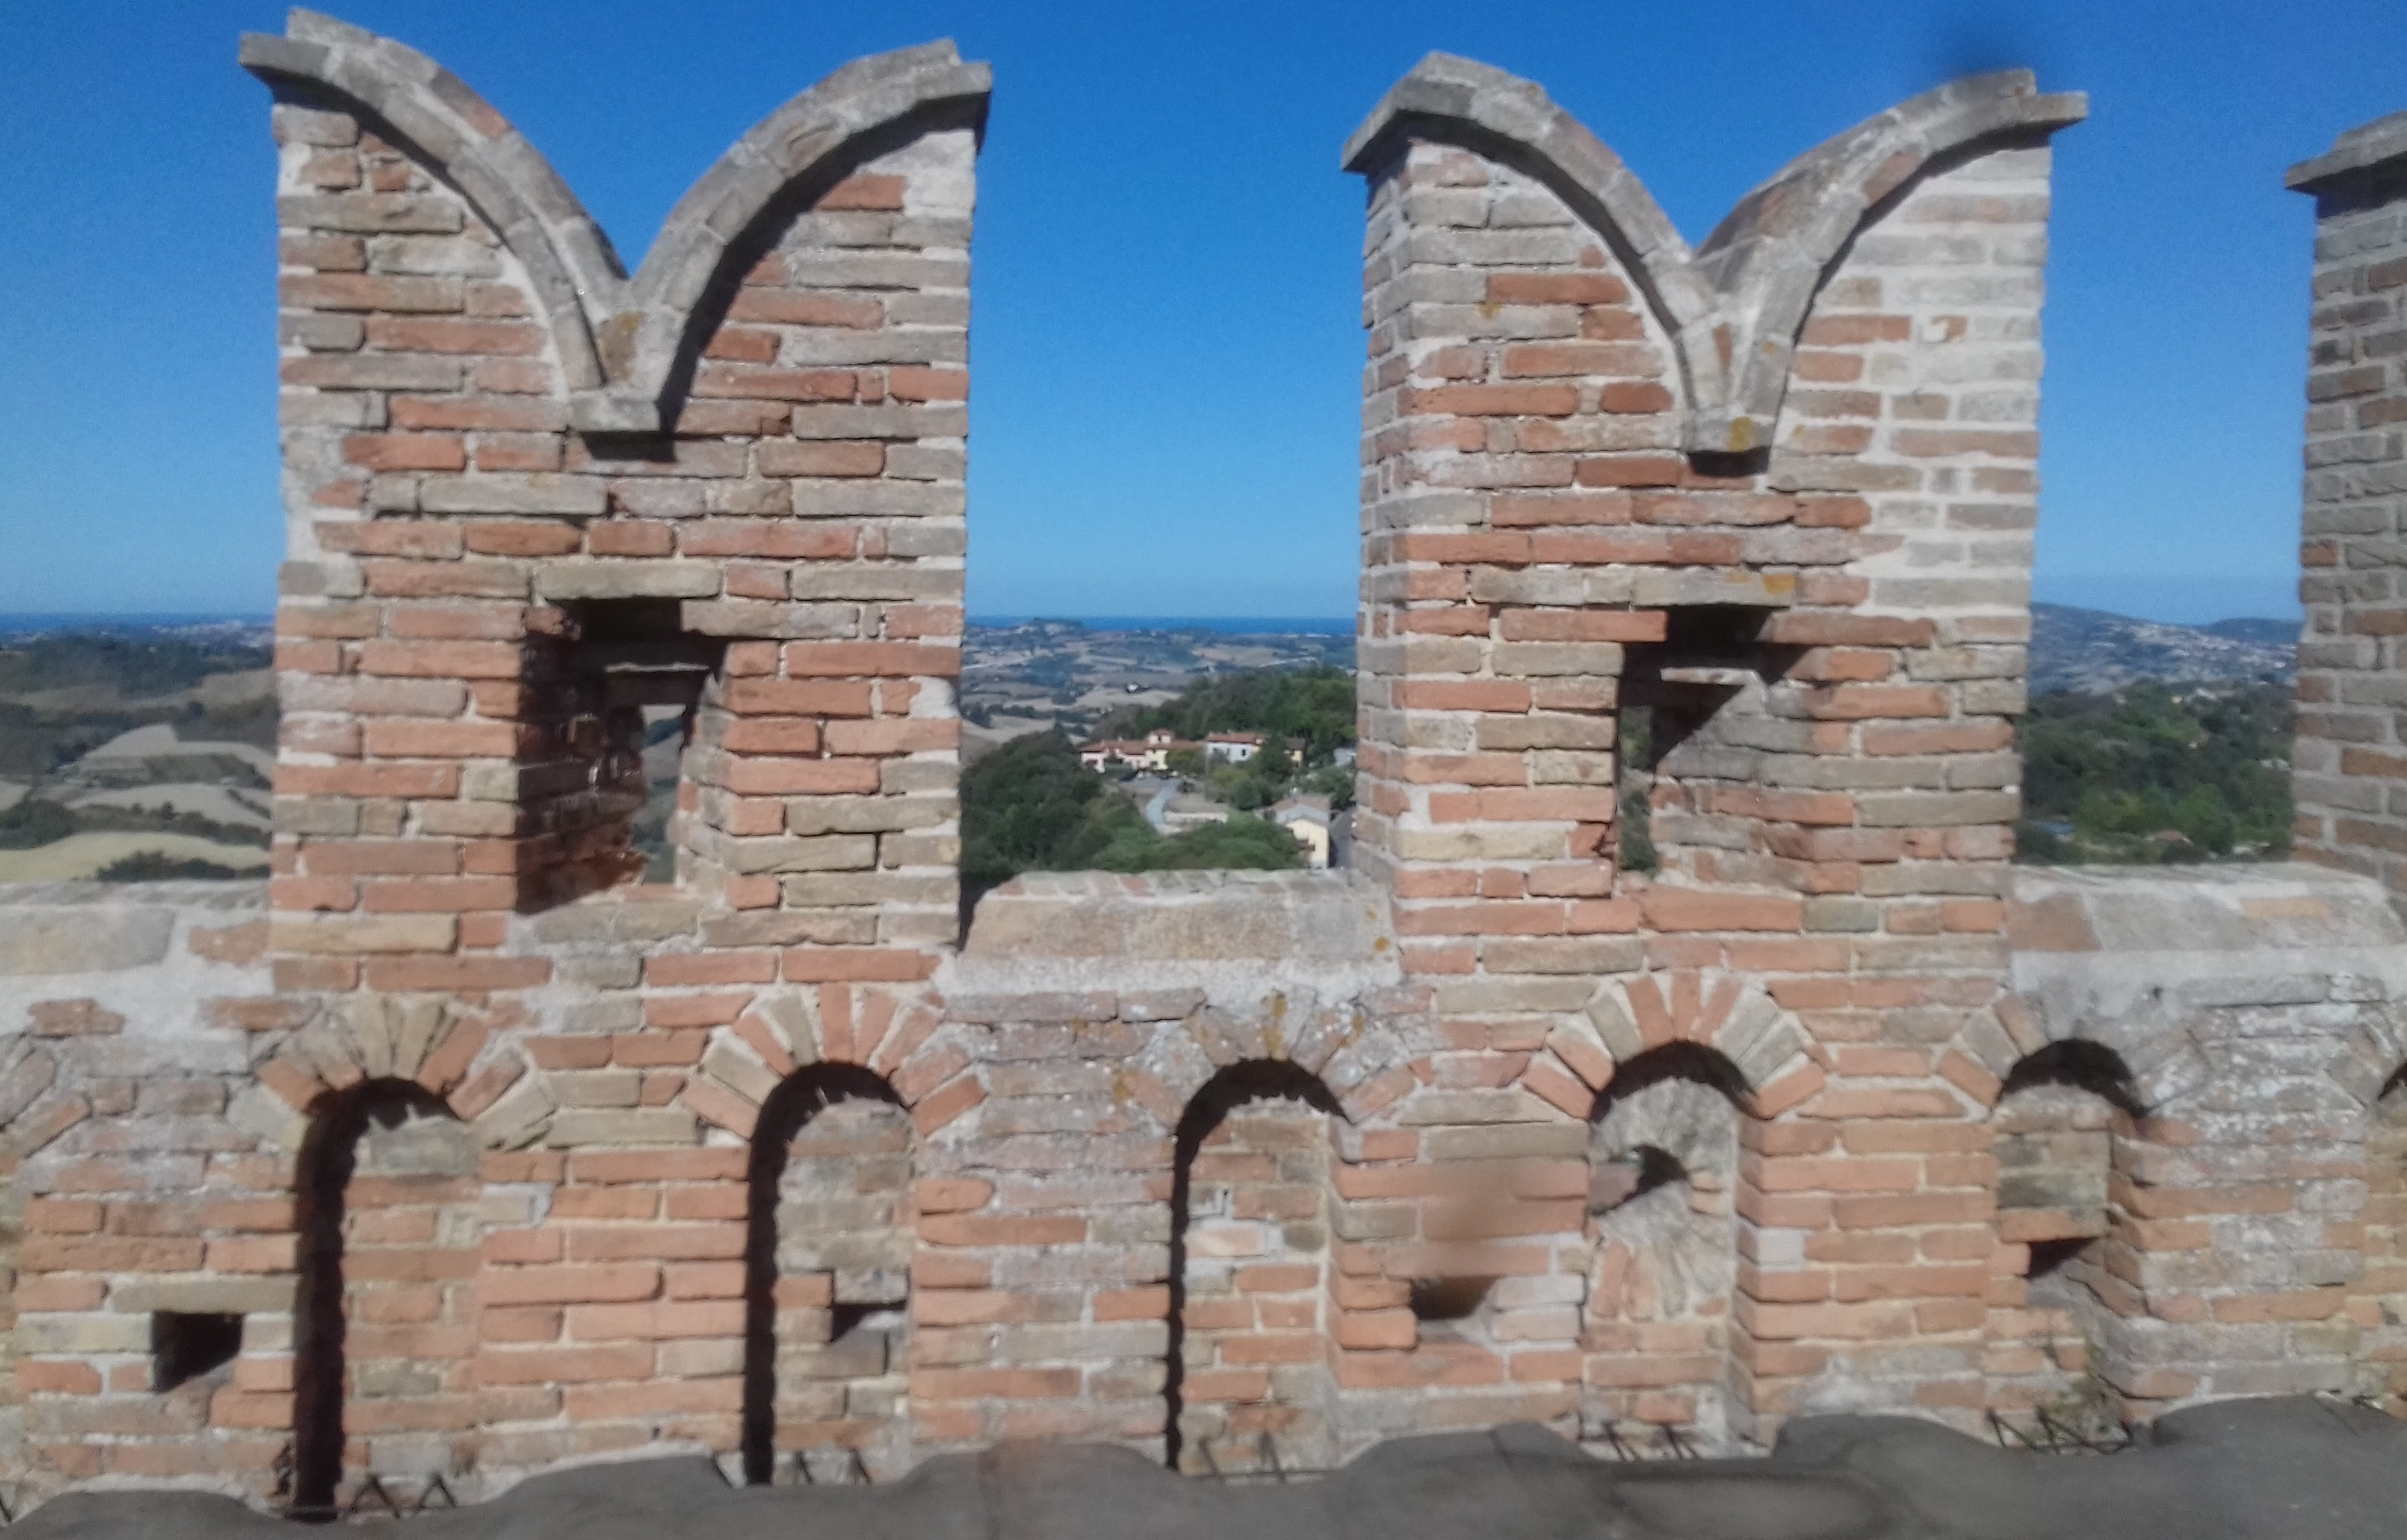 The Englishwoman visits Offagna